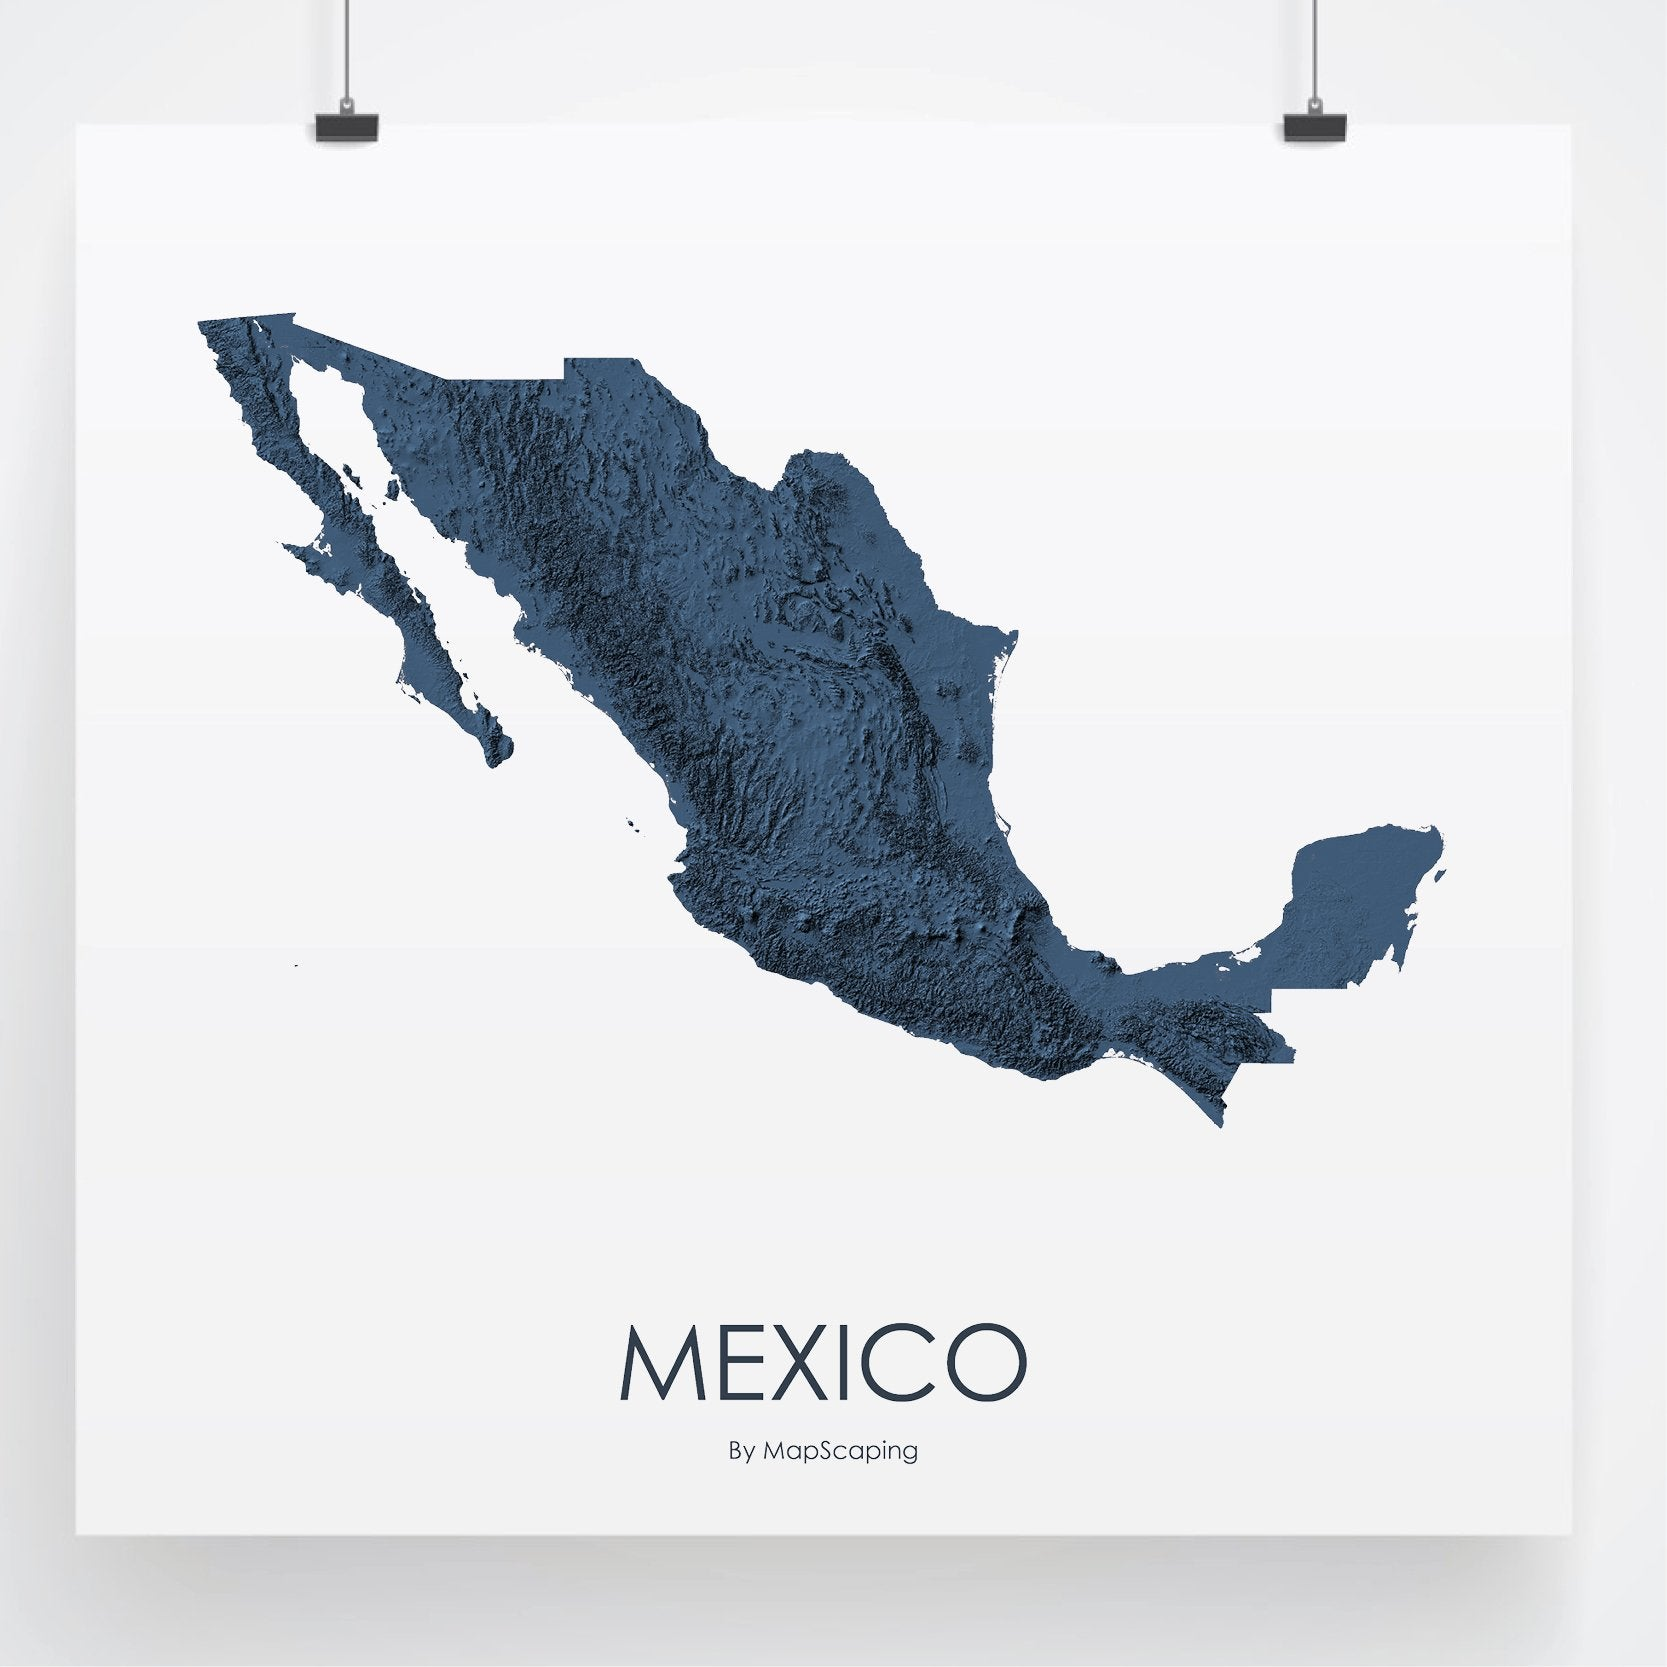 Mexico topographic wall art map - MapScaping.com